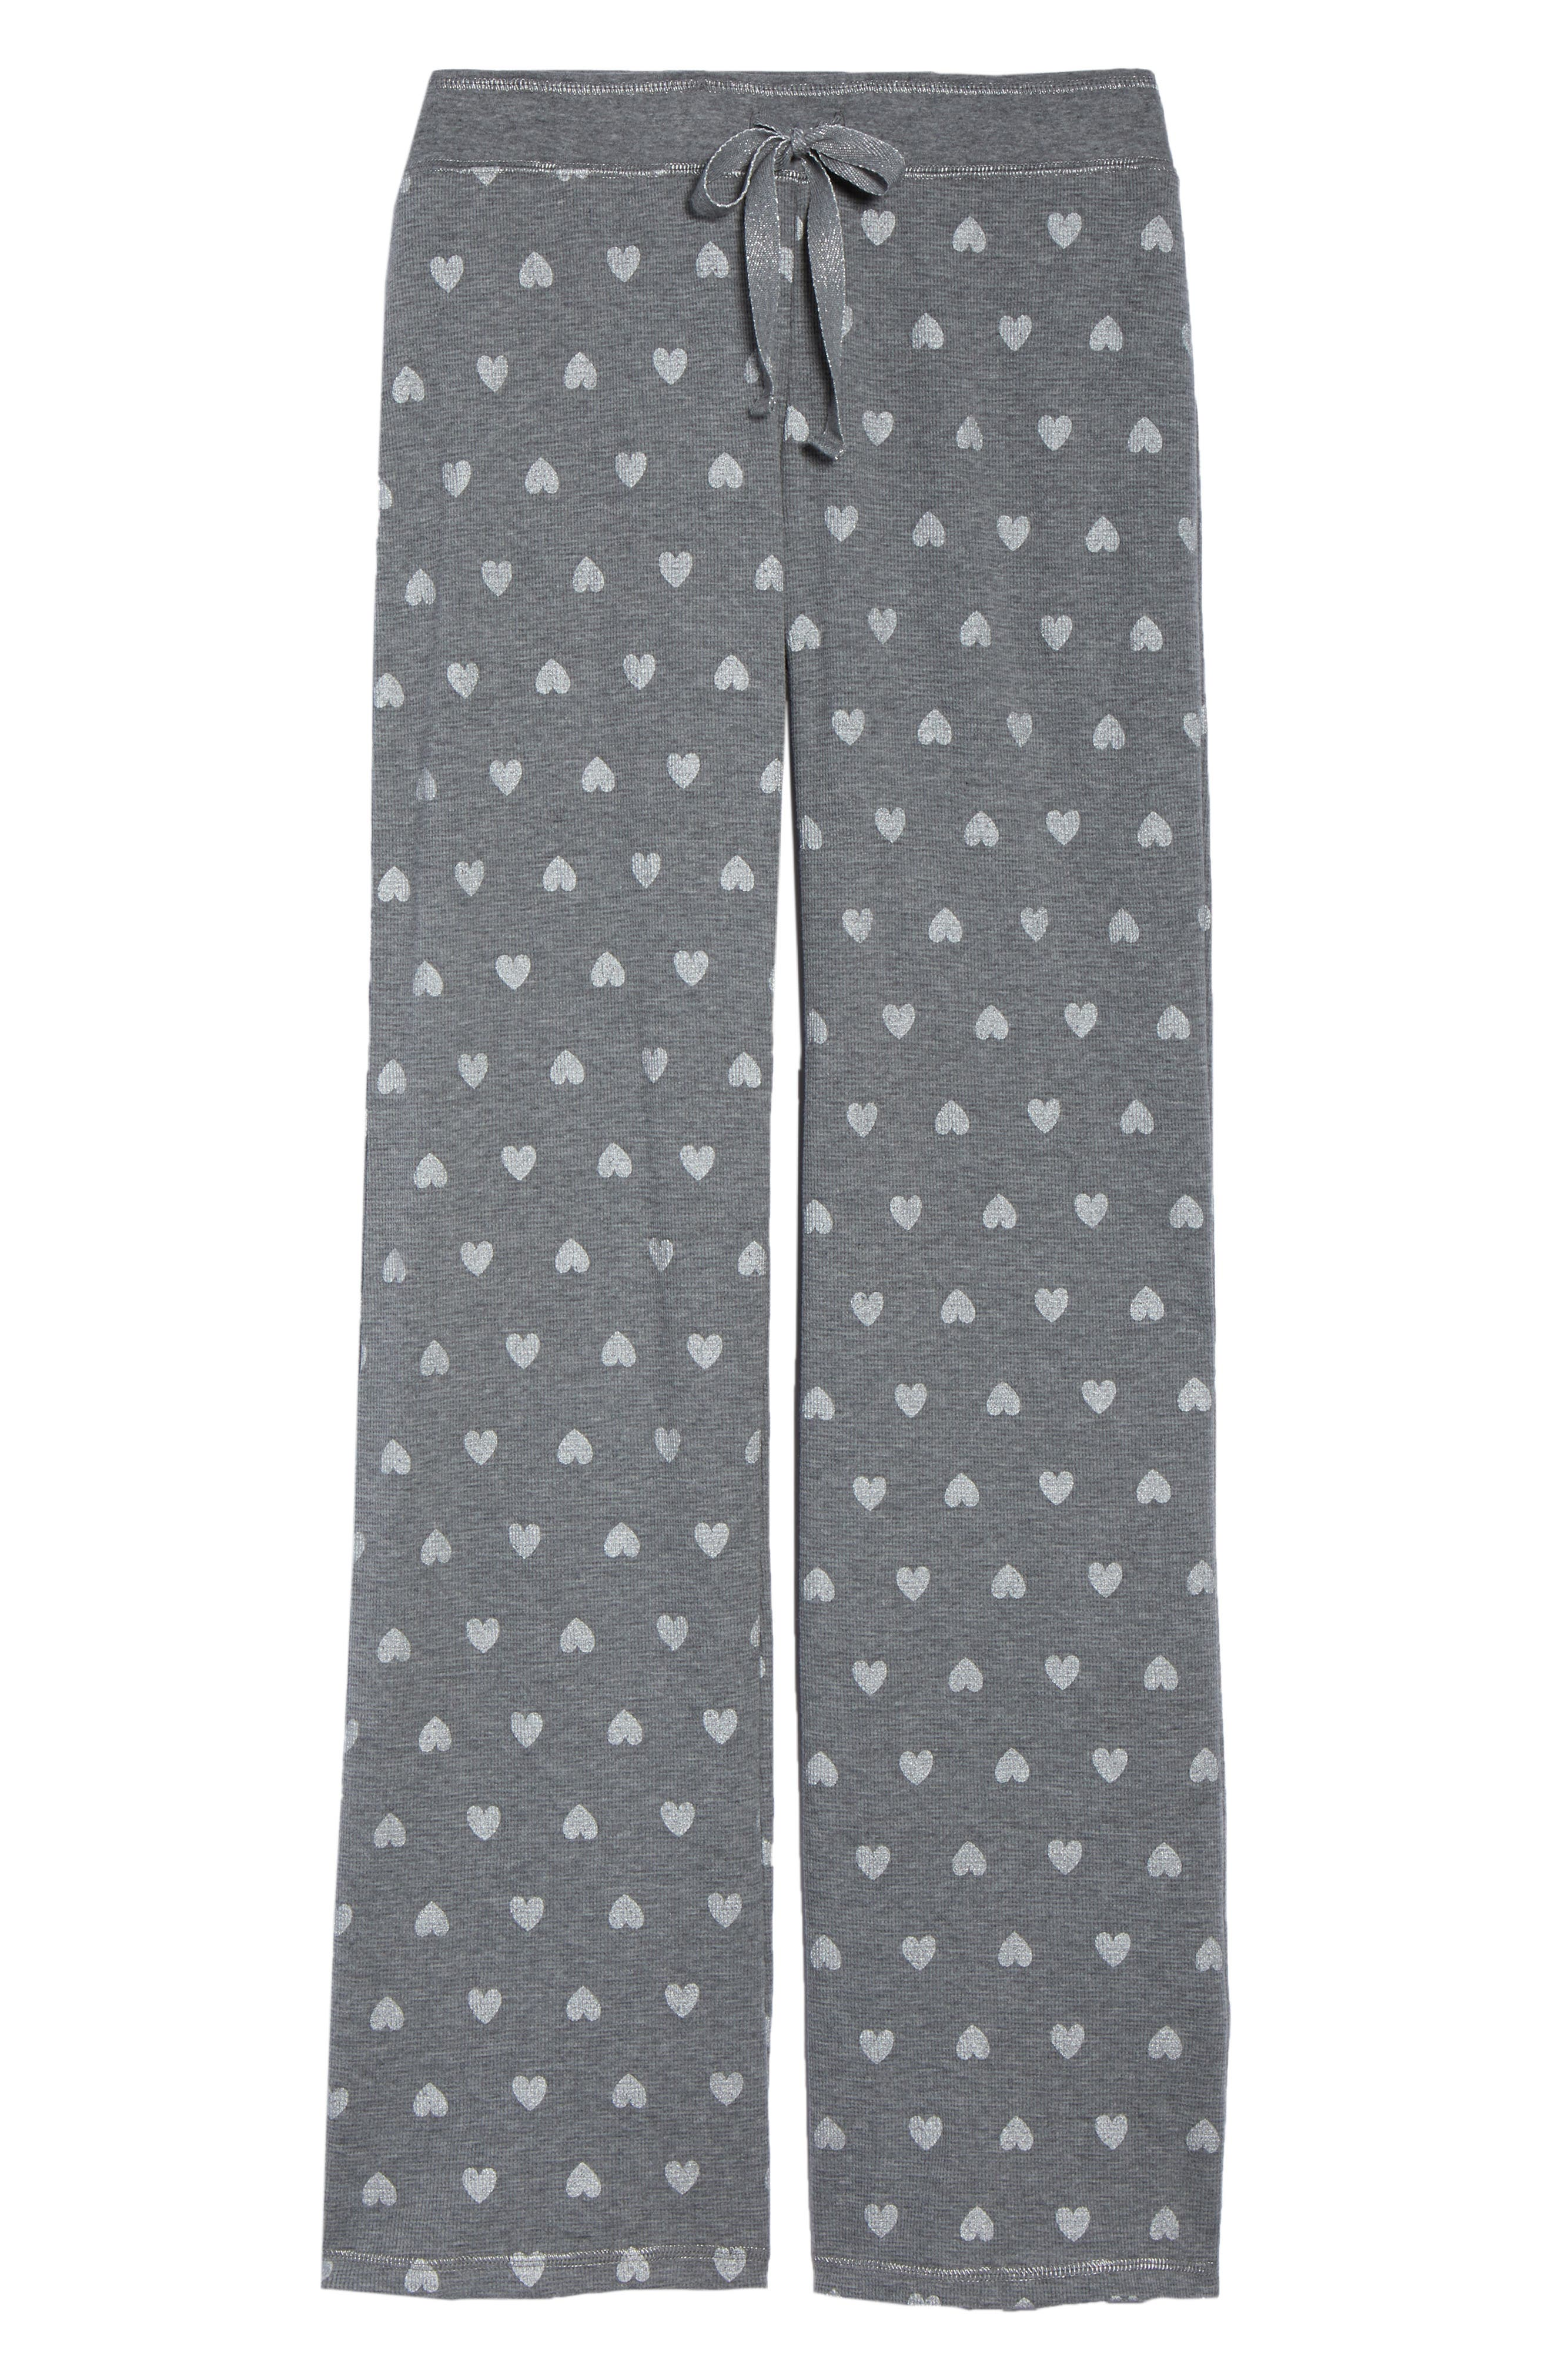 Wild Heart Thermal Lounge Pants,                             Alternate thumbnail 6, color,                             020